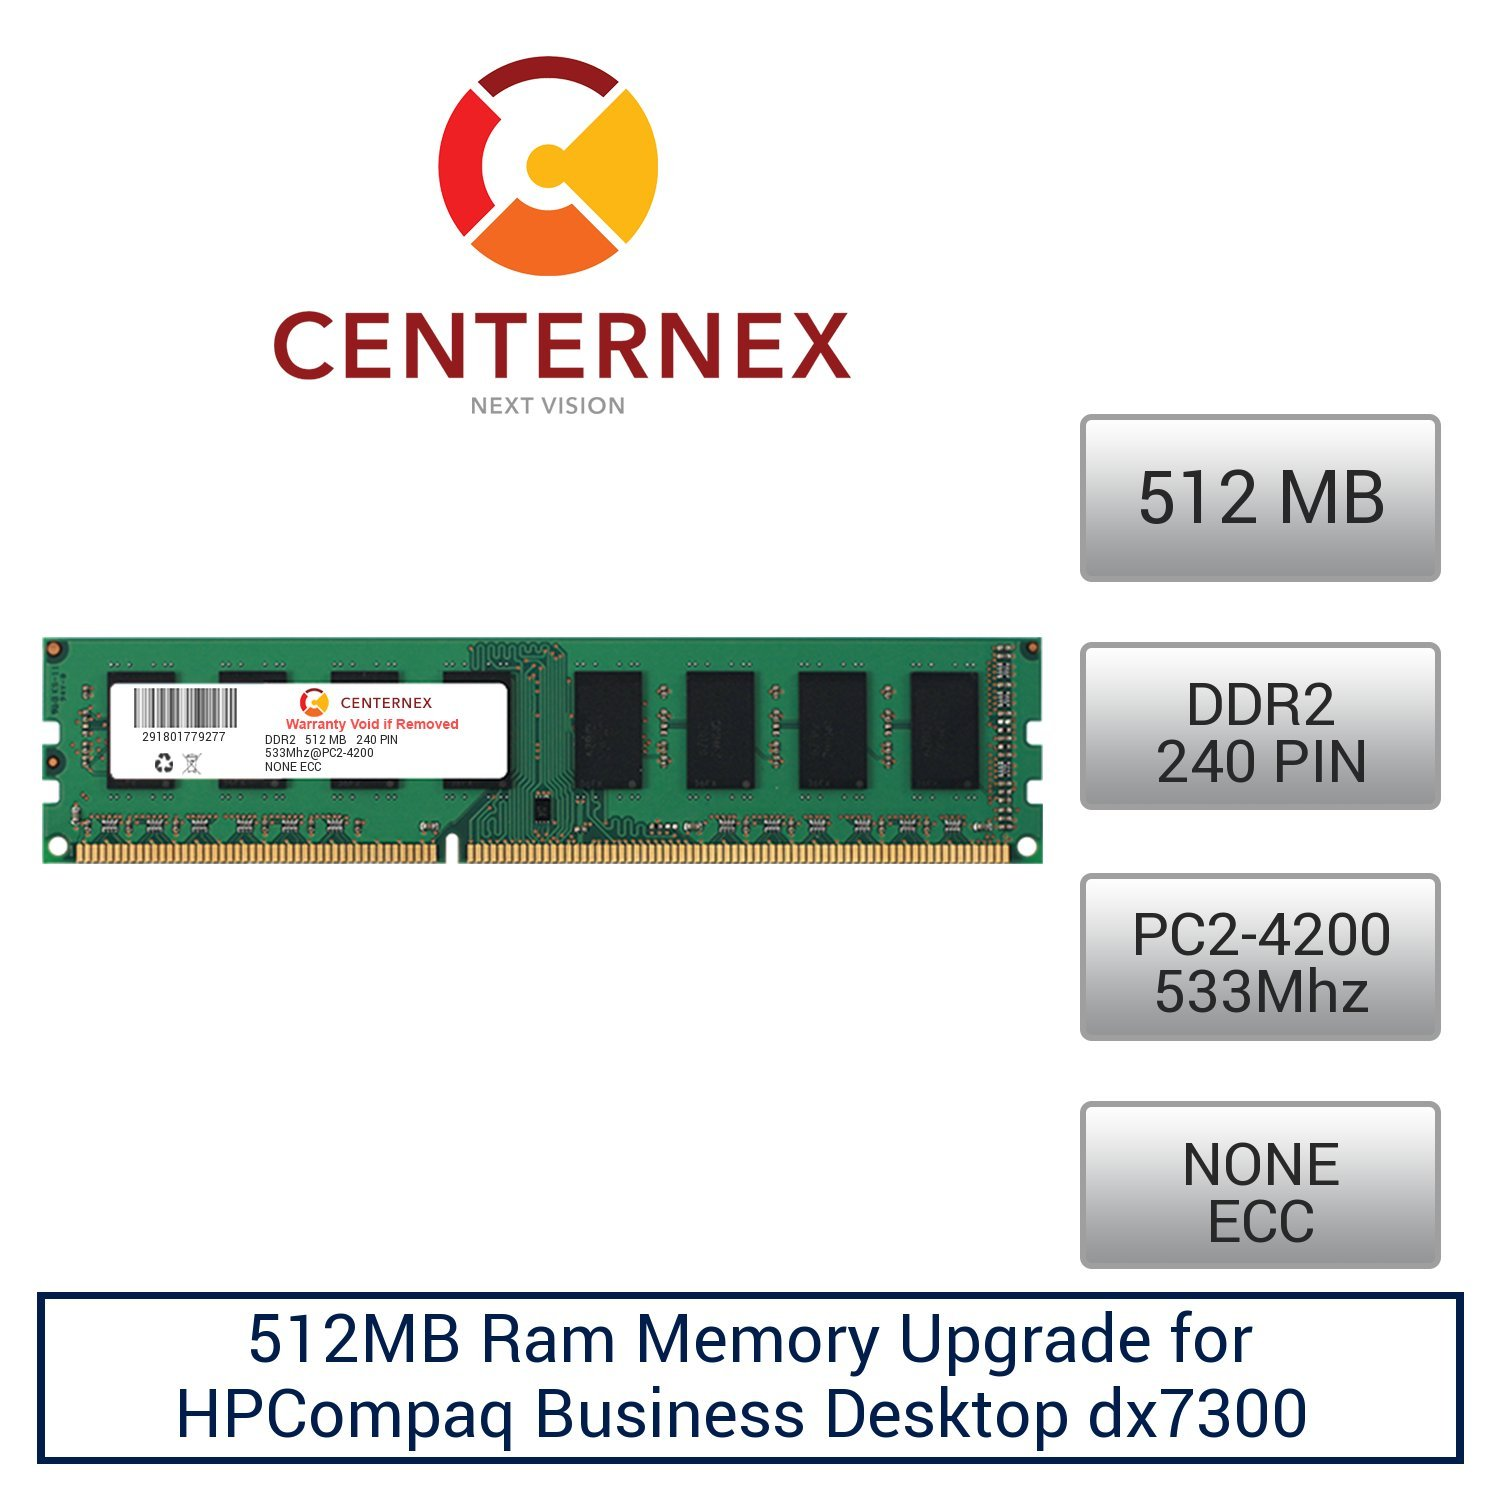 512MB RAM Memory for HPCompaq Business Desktop dx7300 (Microtower)  (382509001 ) (DDR24200 NonECC) Desktop Memory Upgrade by US Seller at  Amazon.com